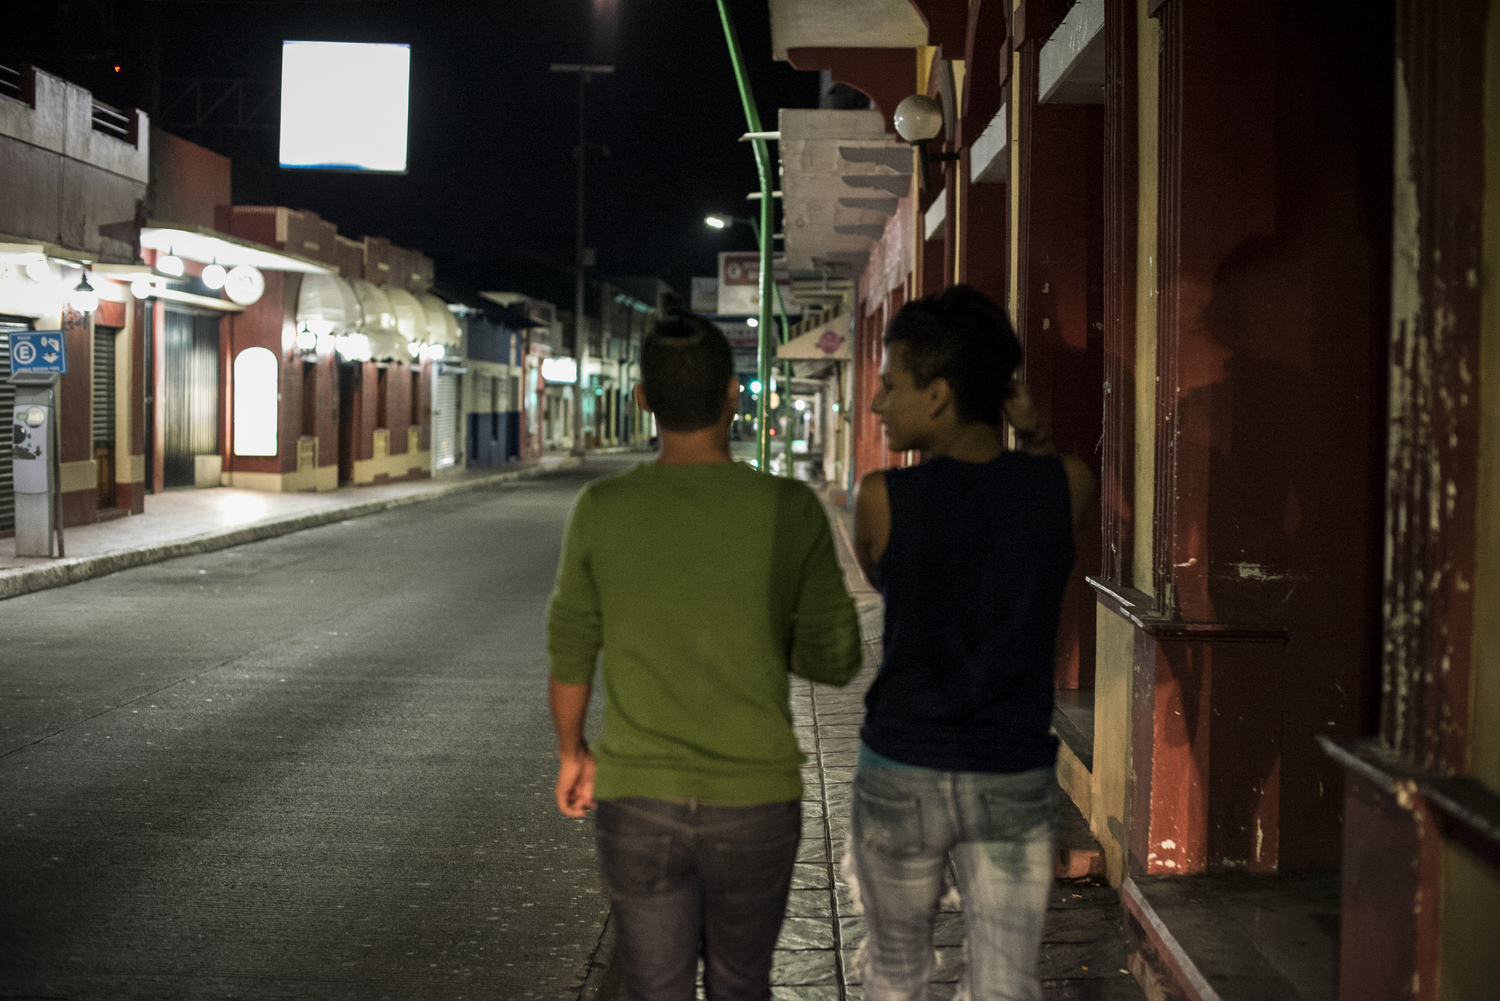 Jose (R) and Enrique (L) two transgender refugees from El Salvador both claim to have been sexually assaulted by Mexican migration officials.